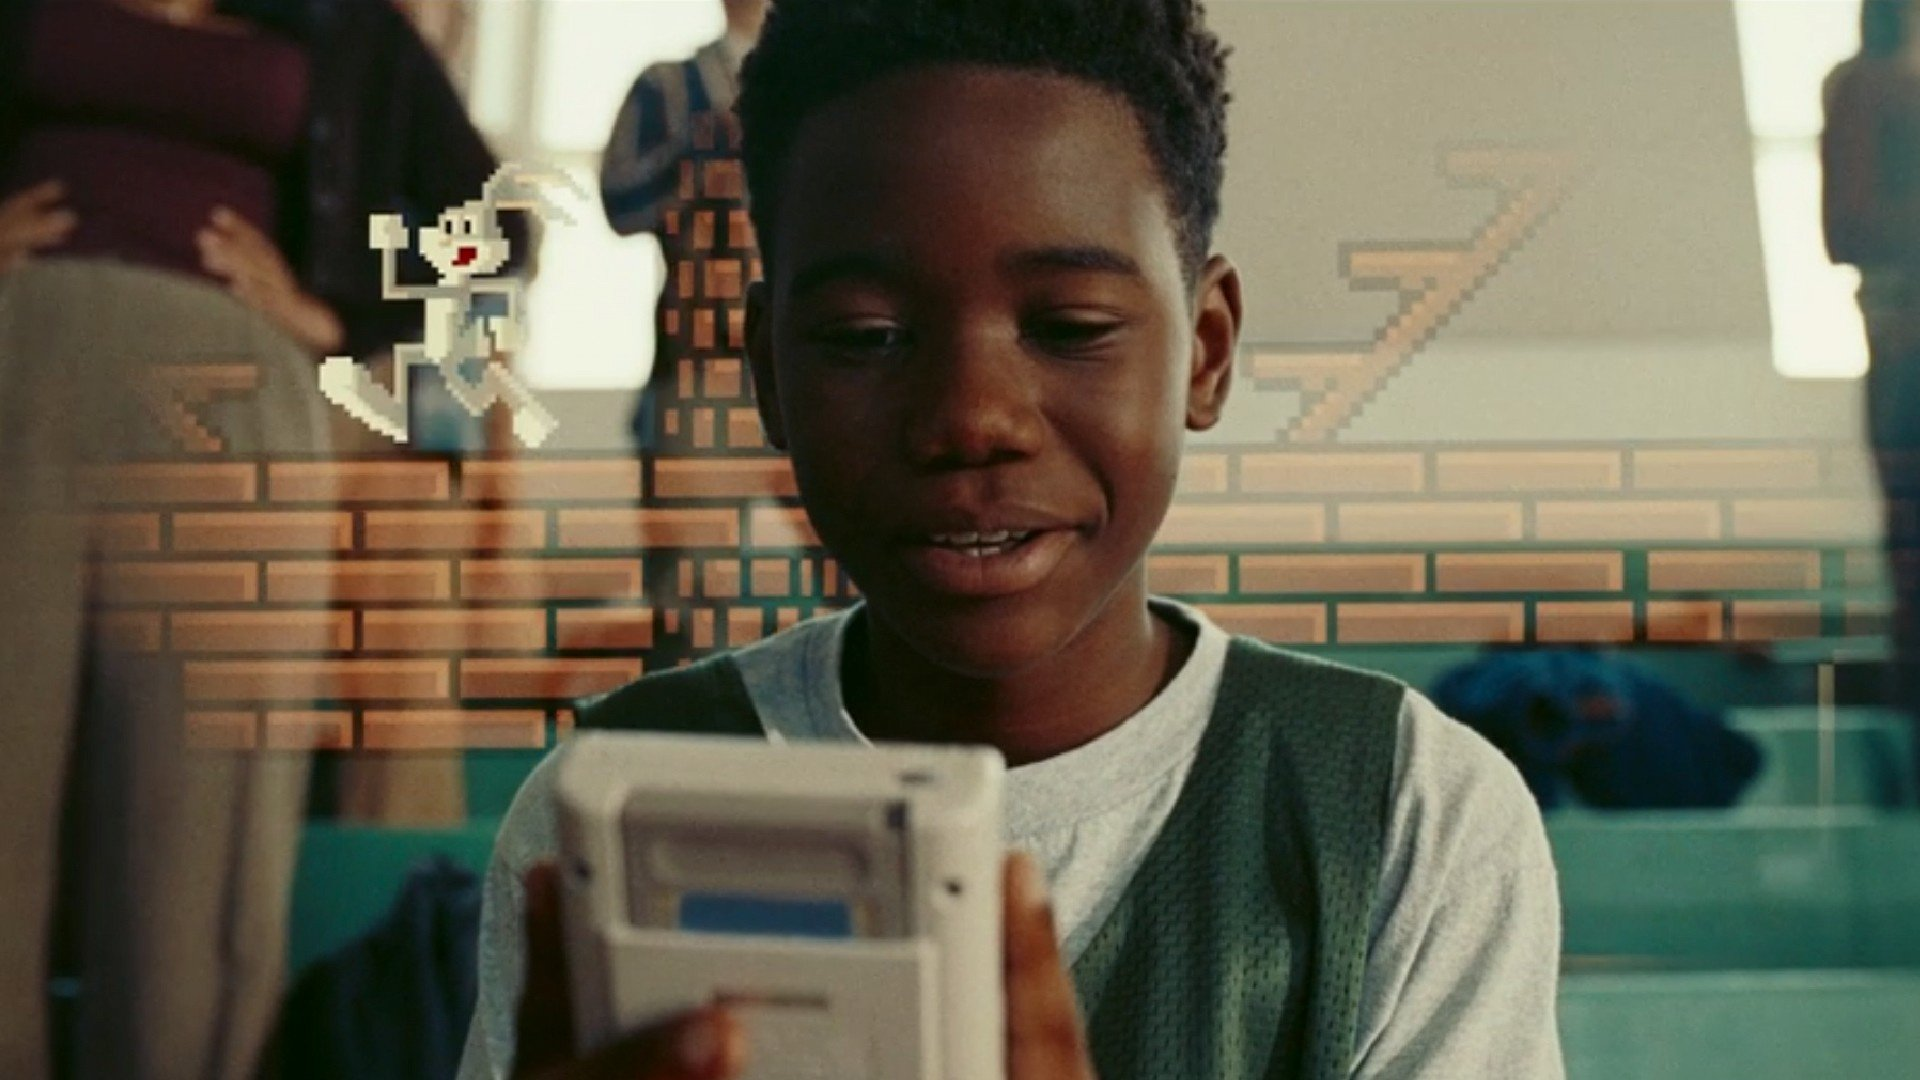 The real hero of this movie is the kid who gave a friend an expensive (albeit second-hand) console